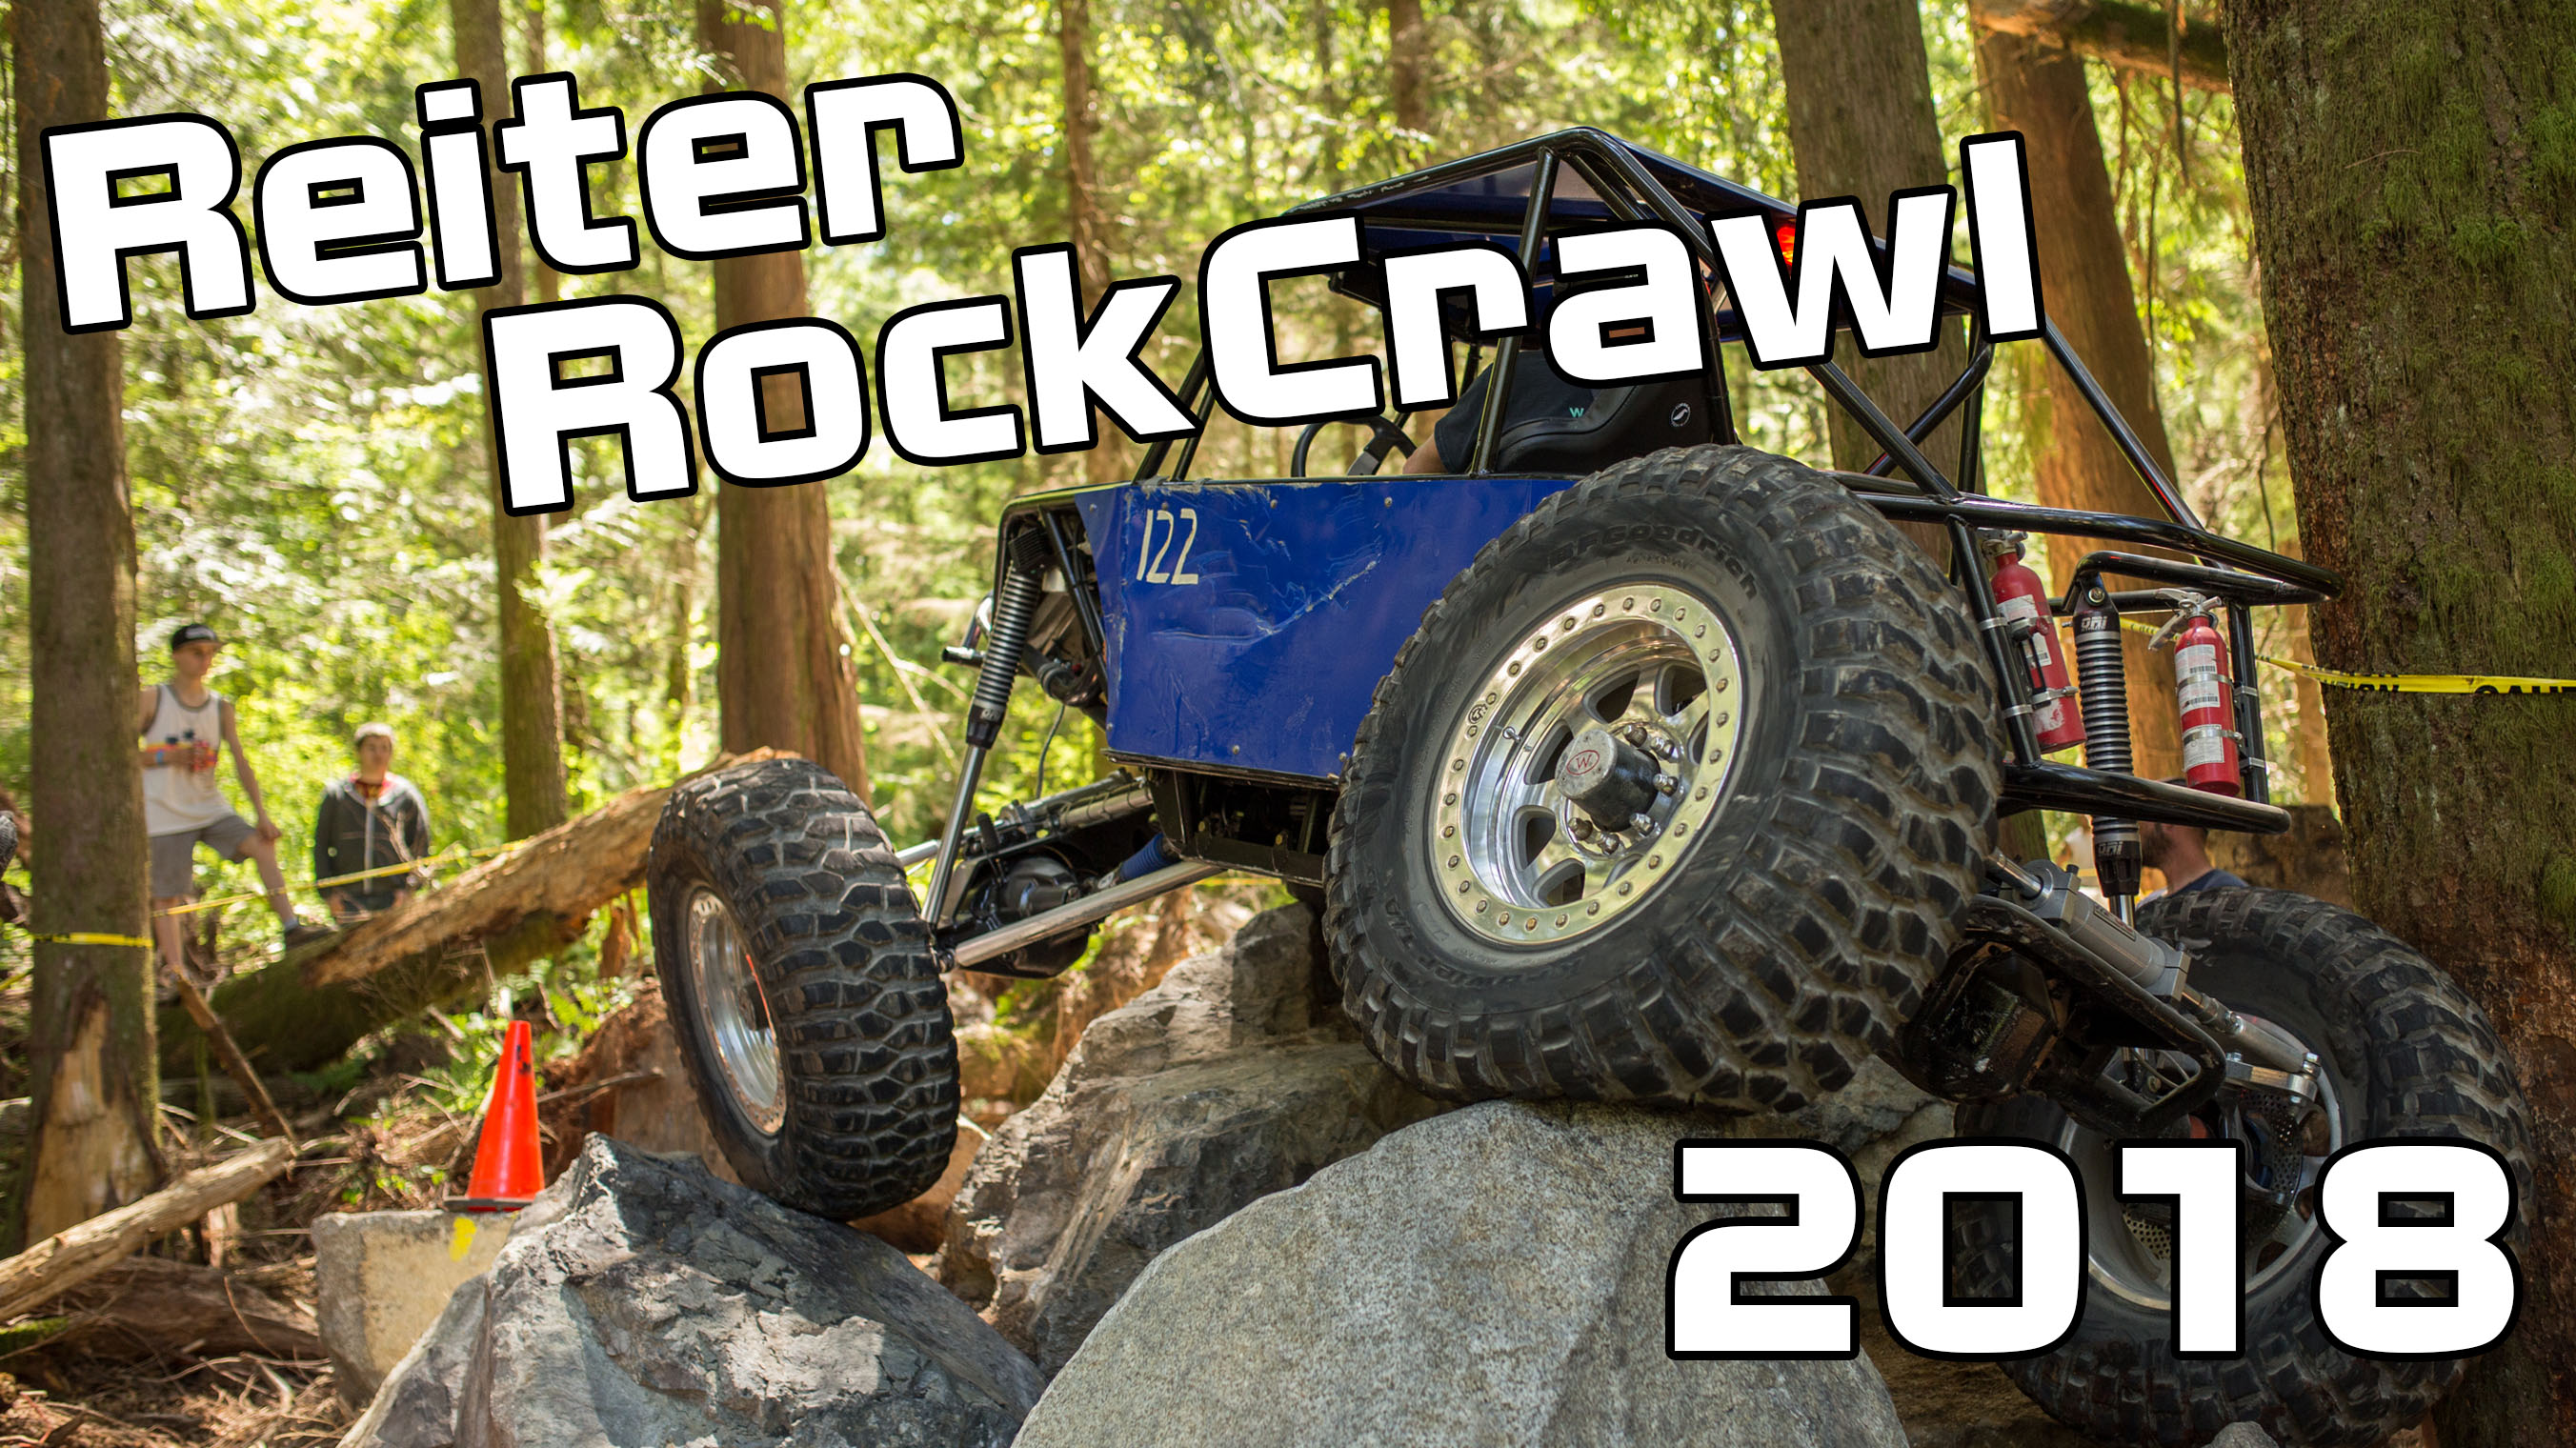 Reiter Rock Crawl 2018